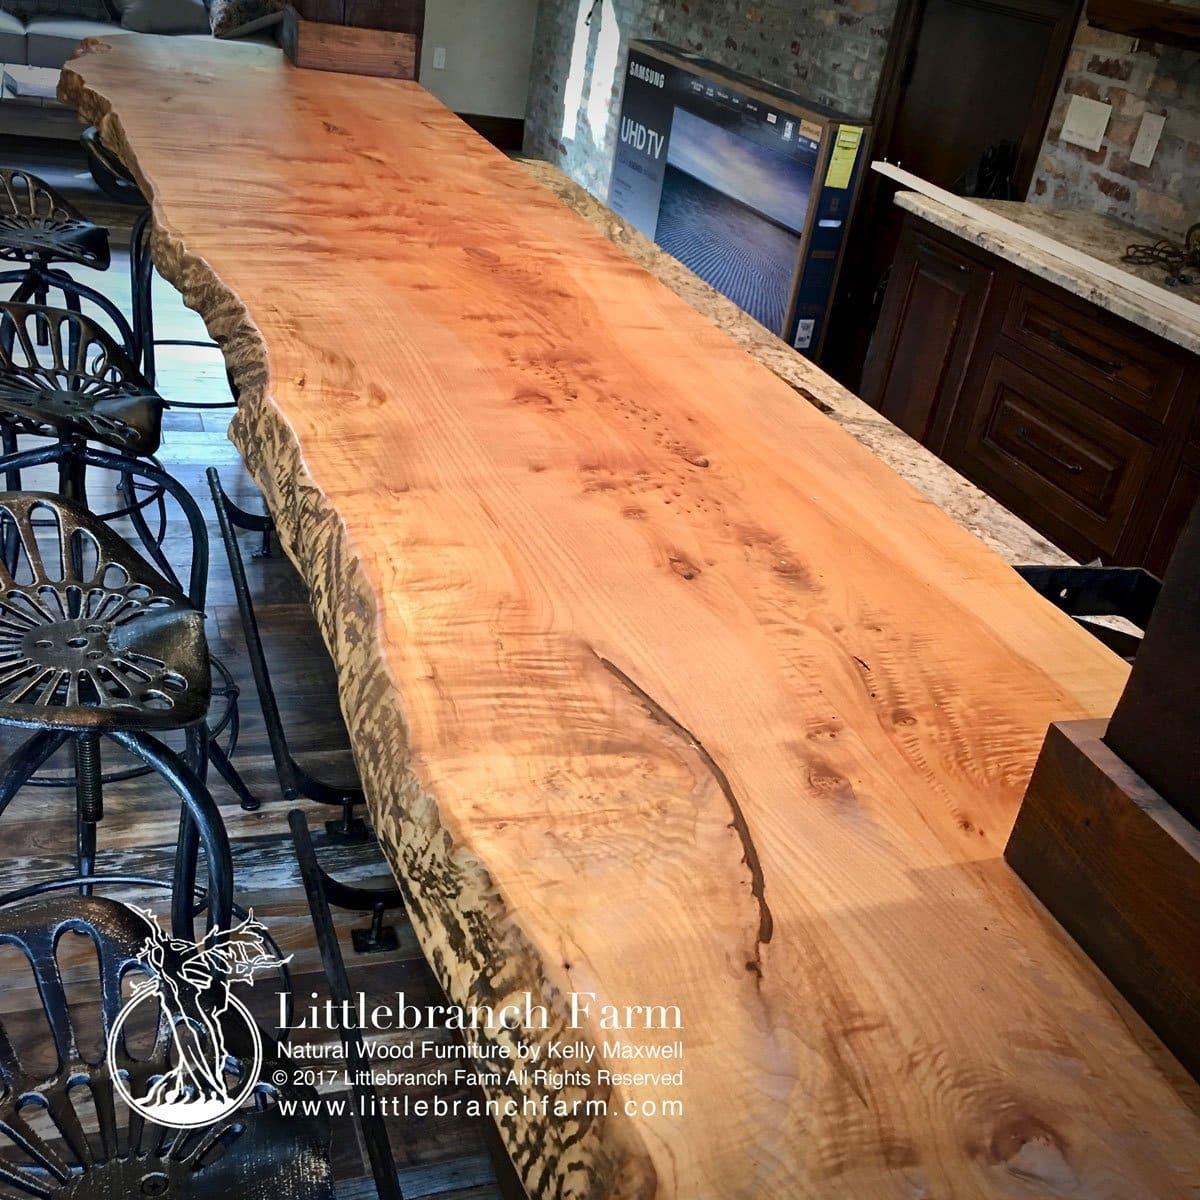 How To Waterproof Wood Countertop Natural Wood Countertops Live Edge Wood Slabs Littlebranch Farm